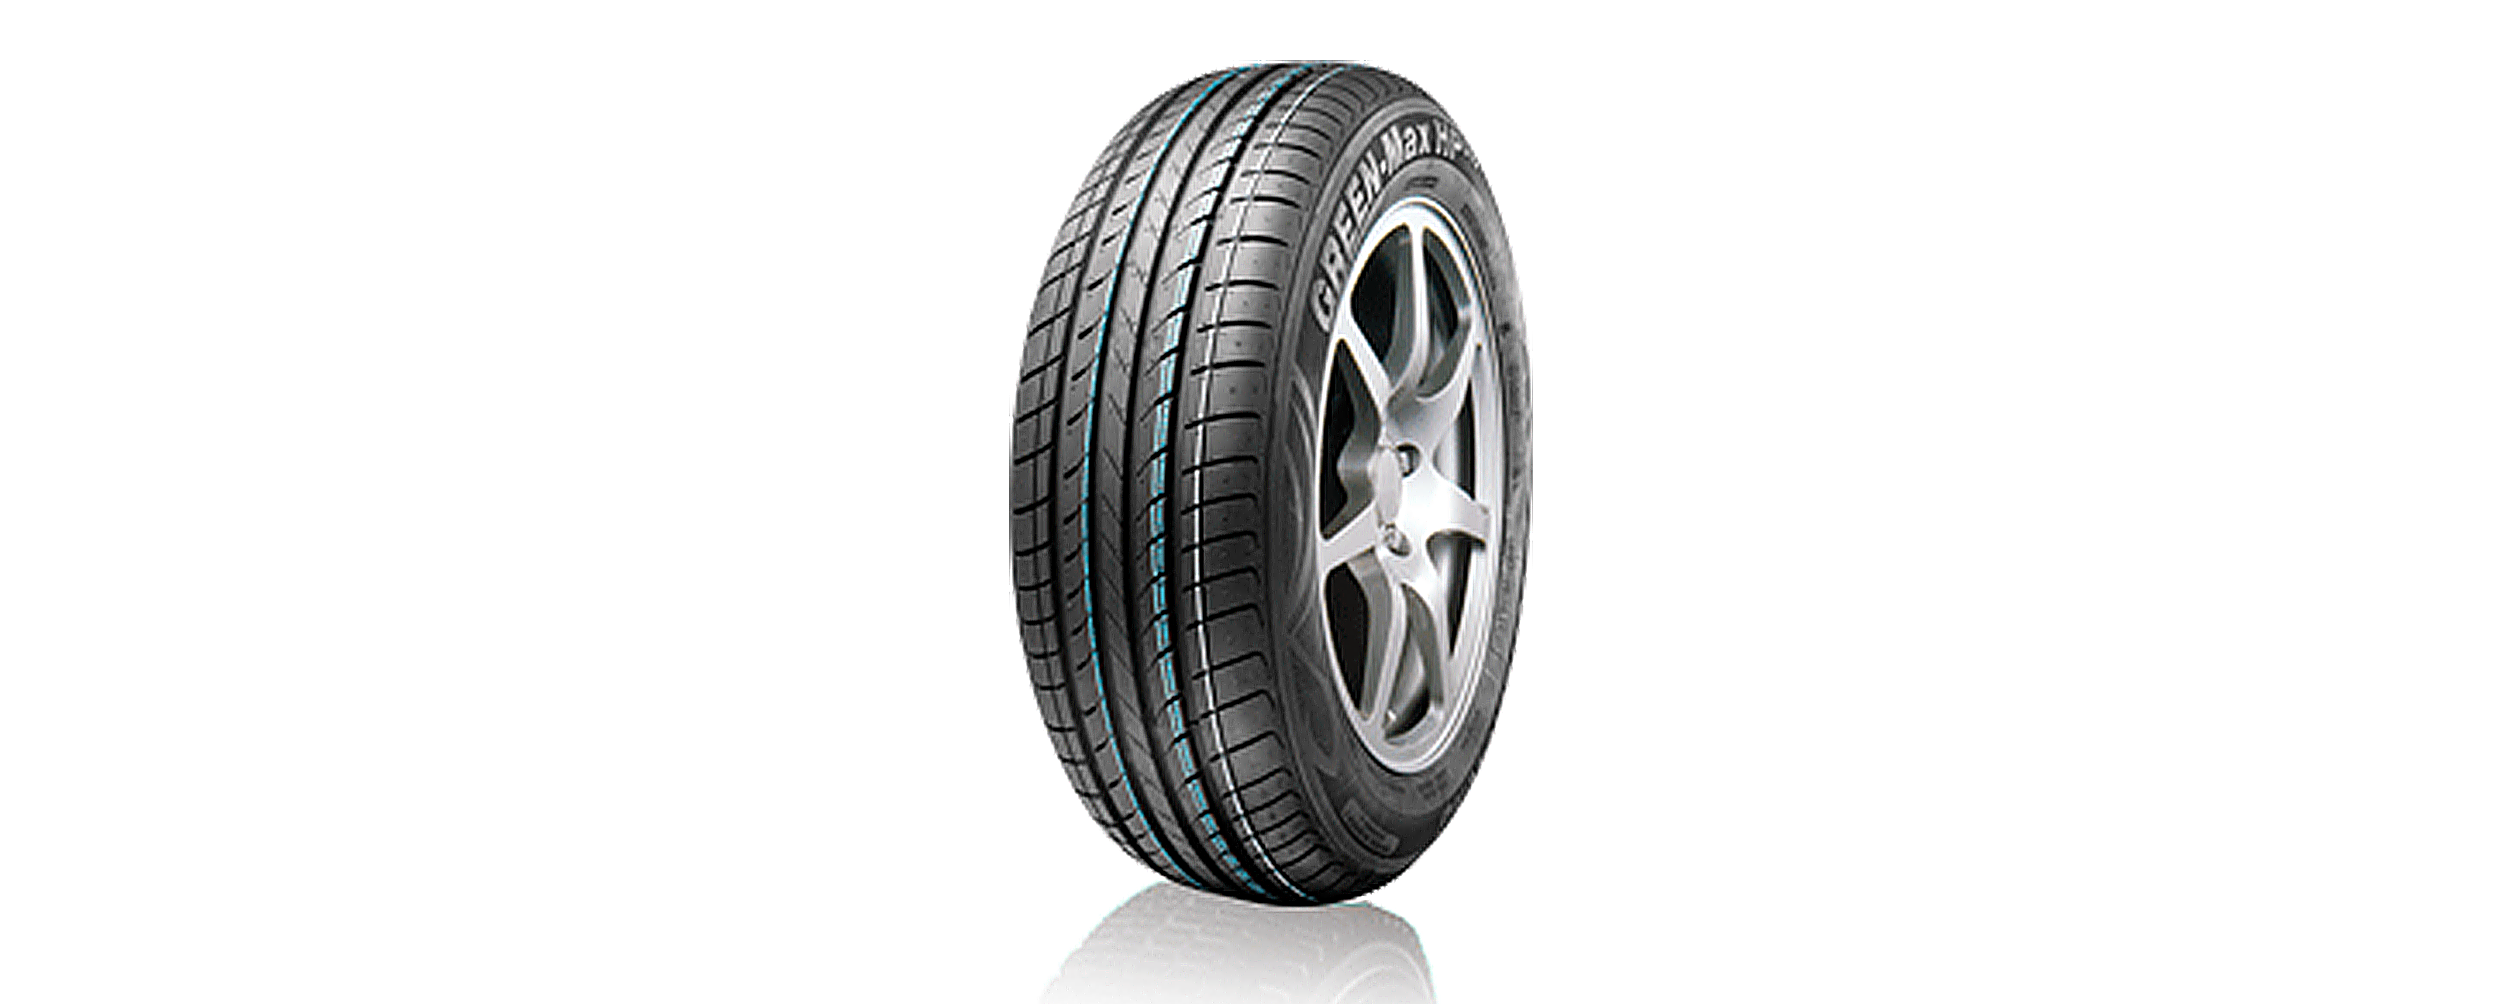 Linglong GREEN-Max HP 010 (205/55 R16)